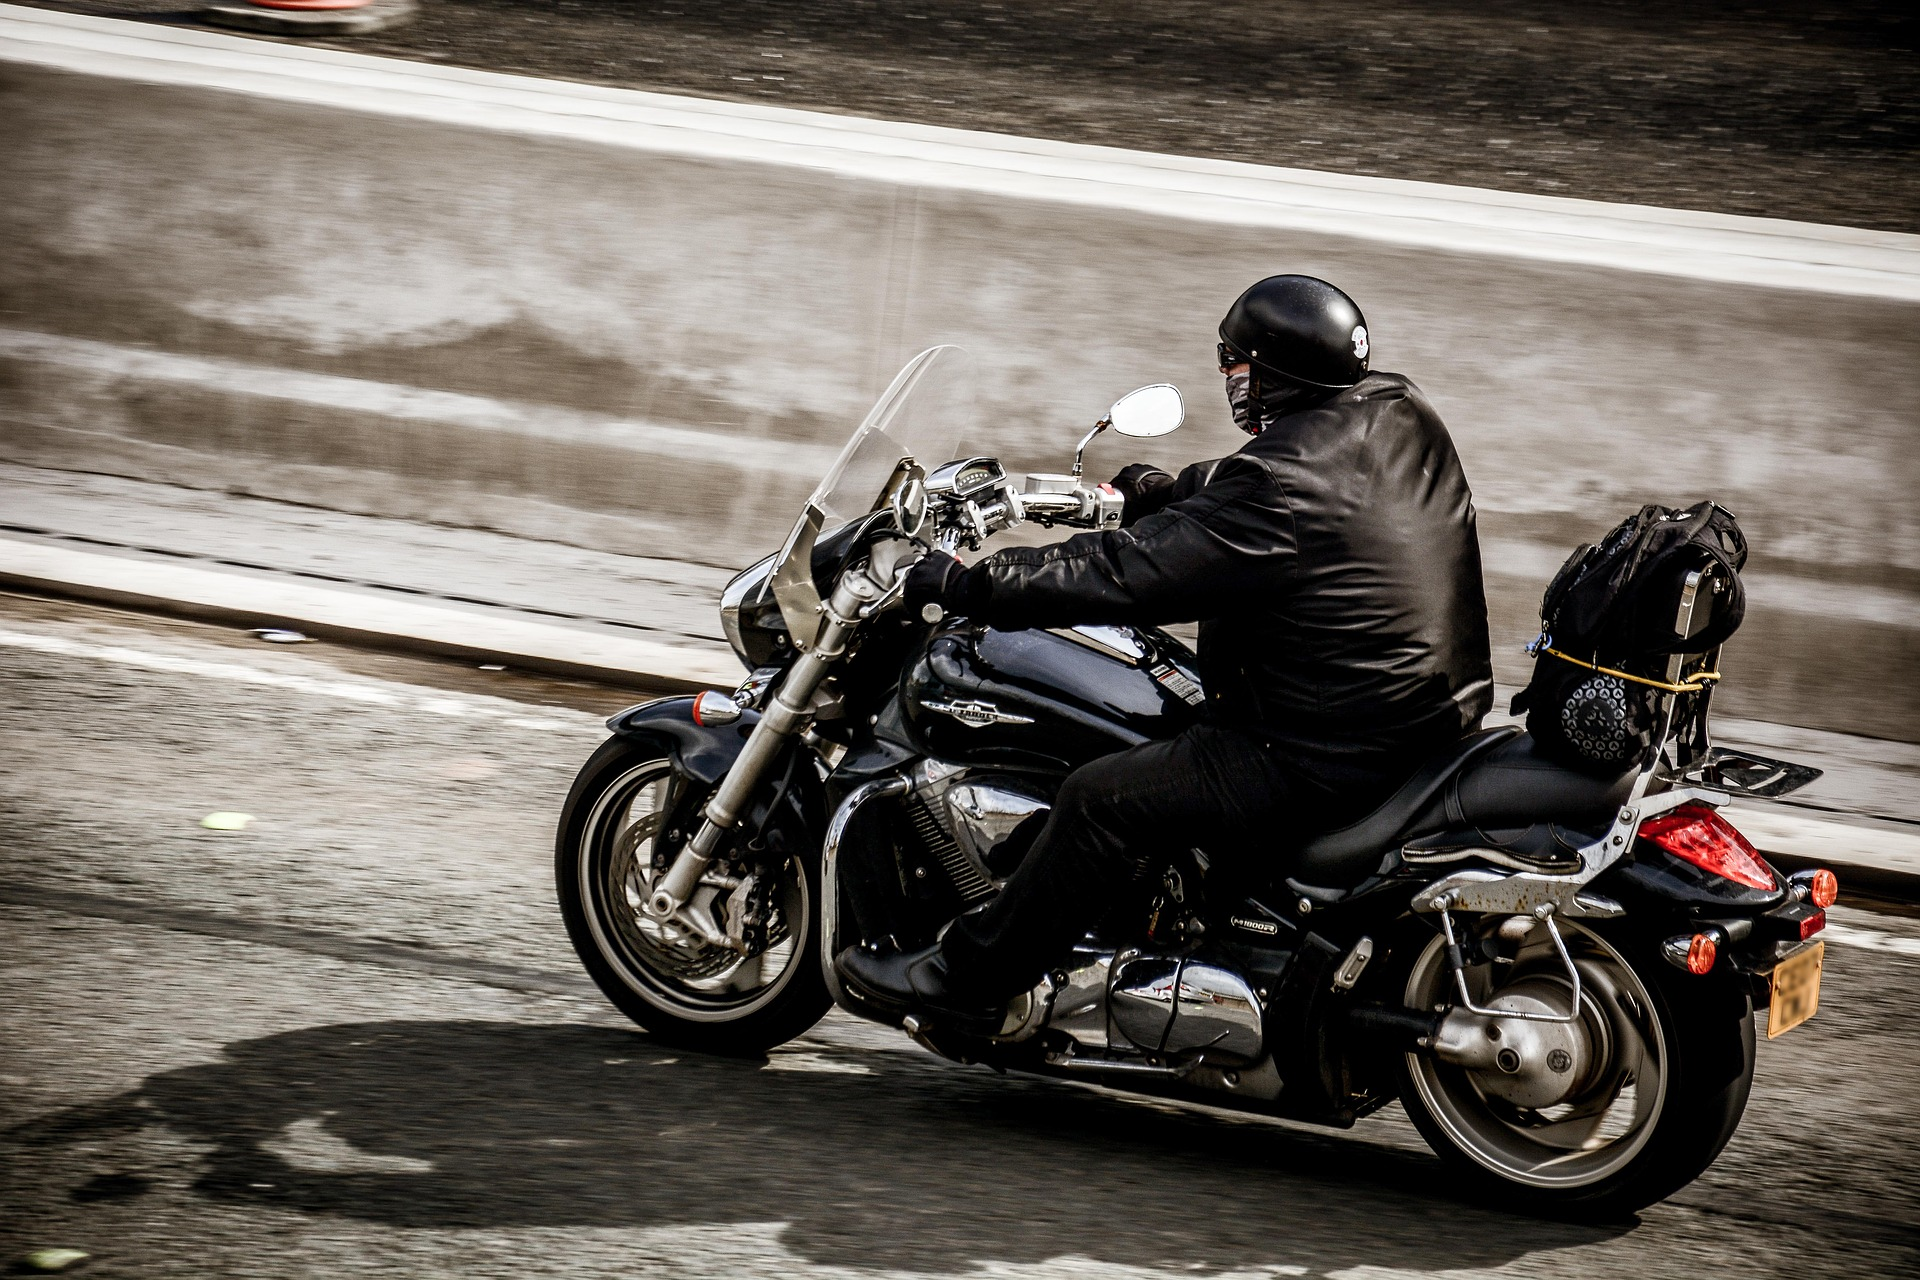 The Facts Don't Lie: Motorcycles Really are Dangerous